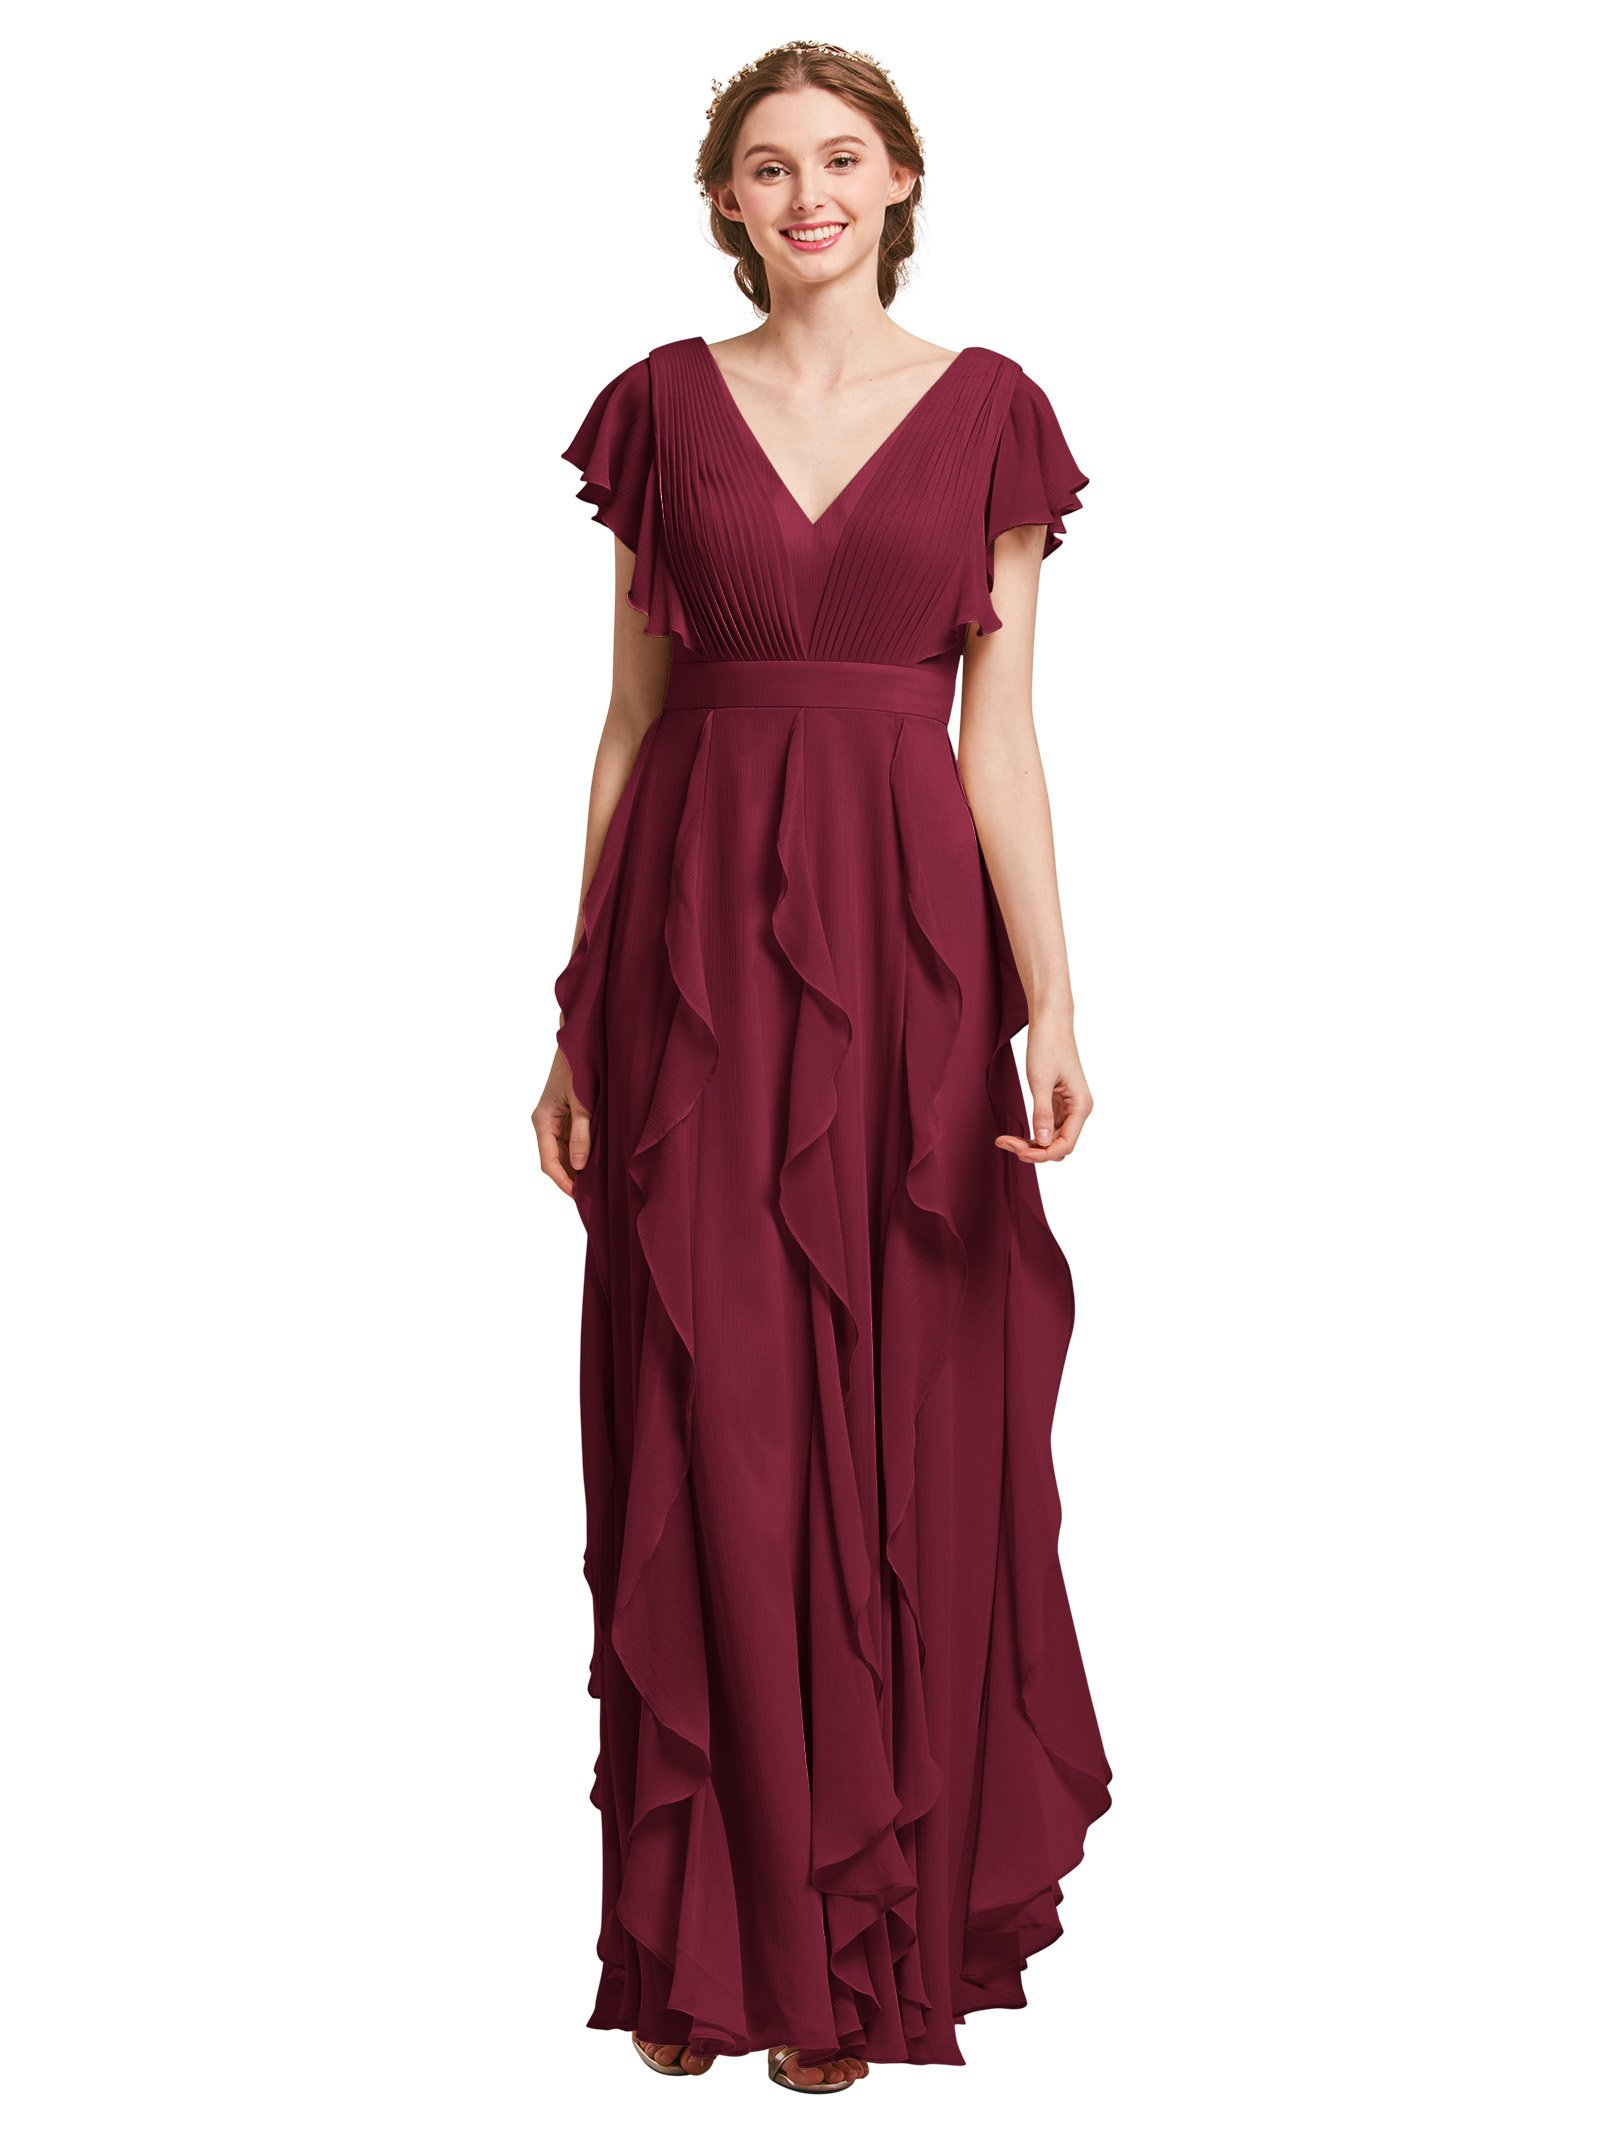 AW Bridal Plus Size Bridesmaid Dresses for Women Formal Dresses with  Sleeves Chiffon Long Gowns and Evening Dresses, Burgundy, US18